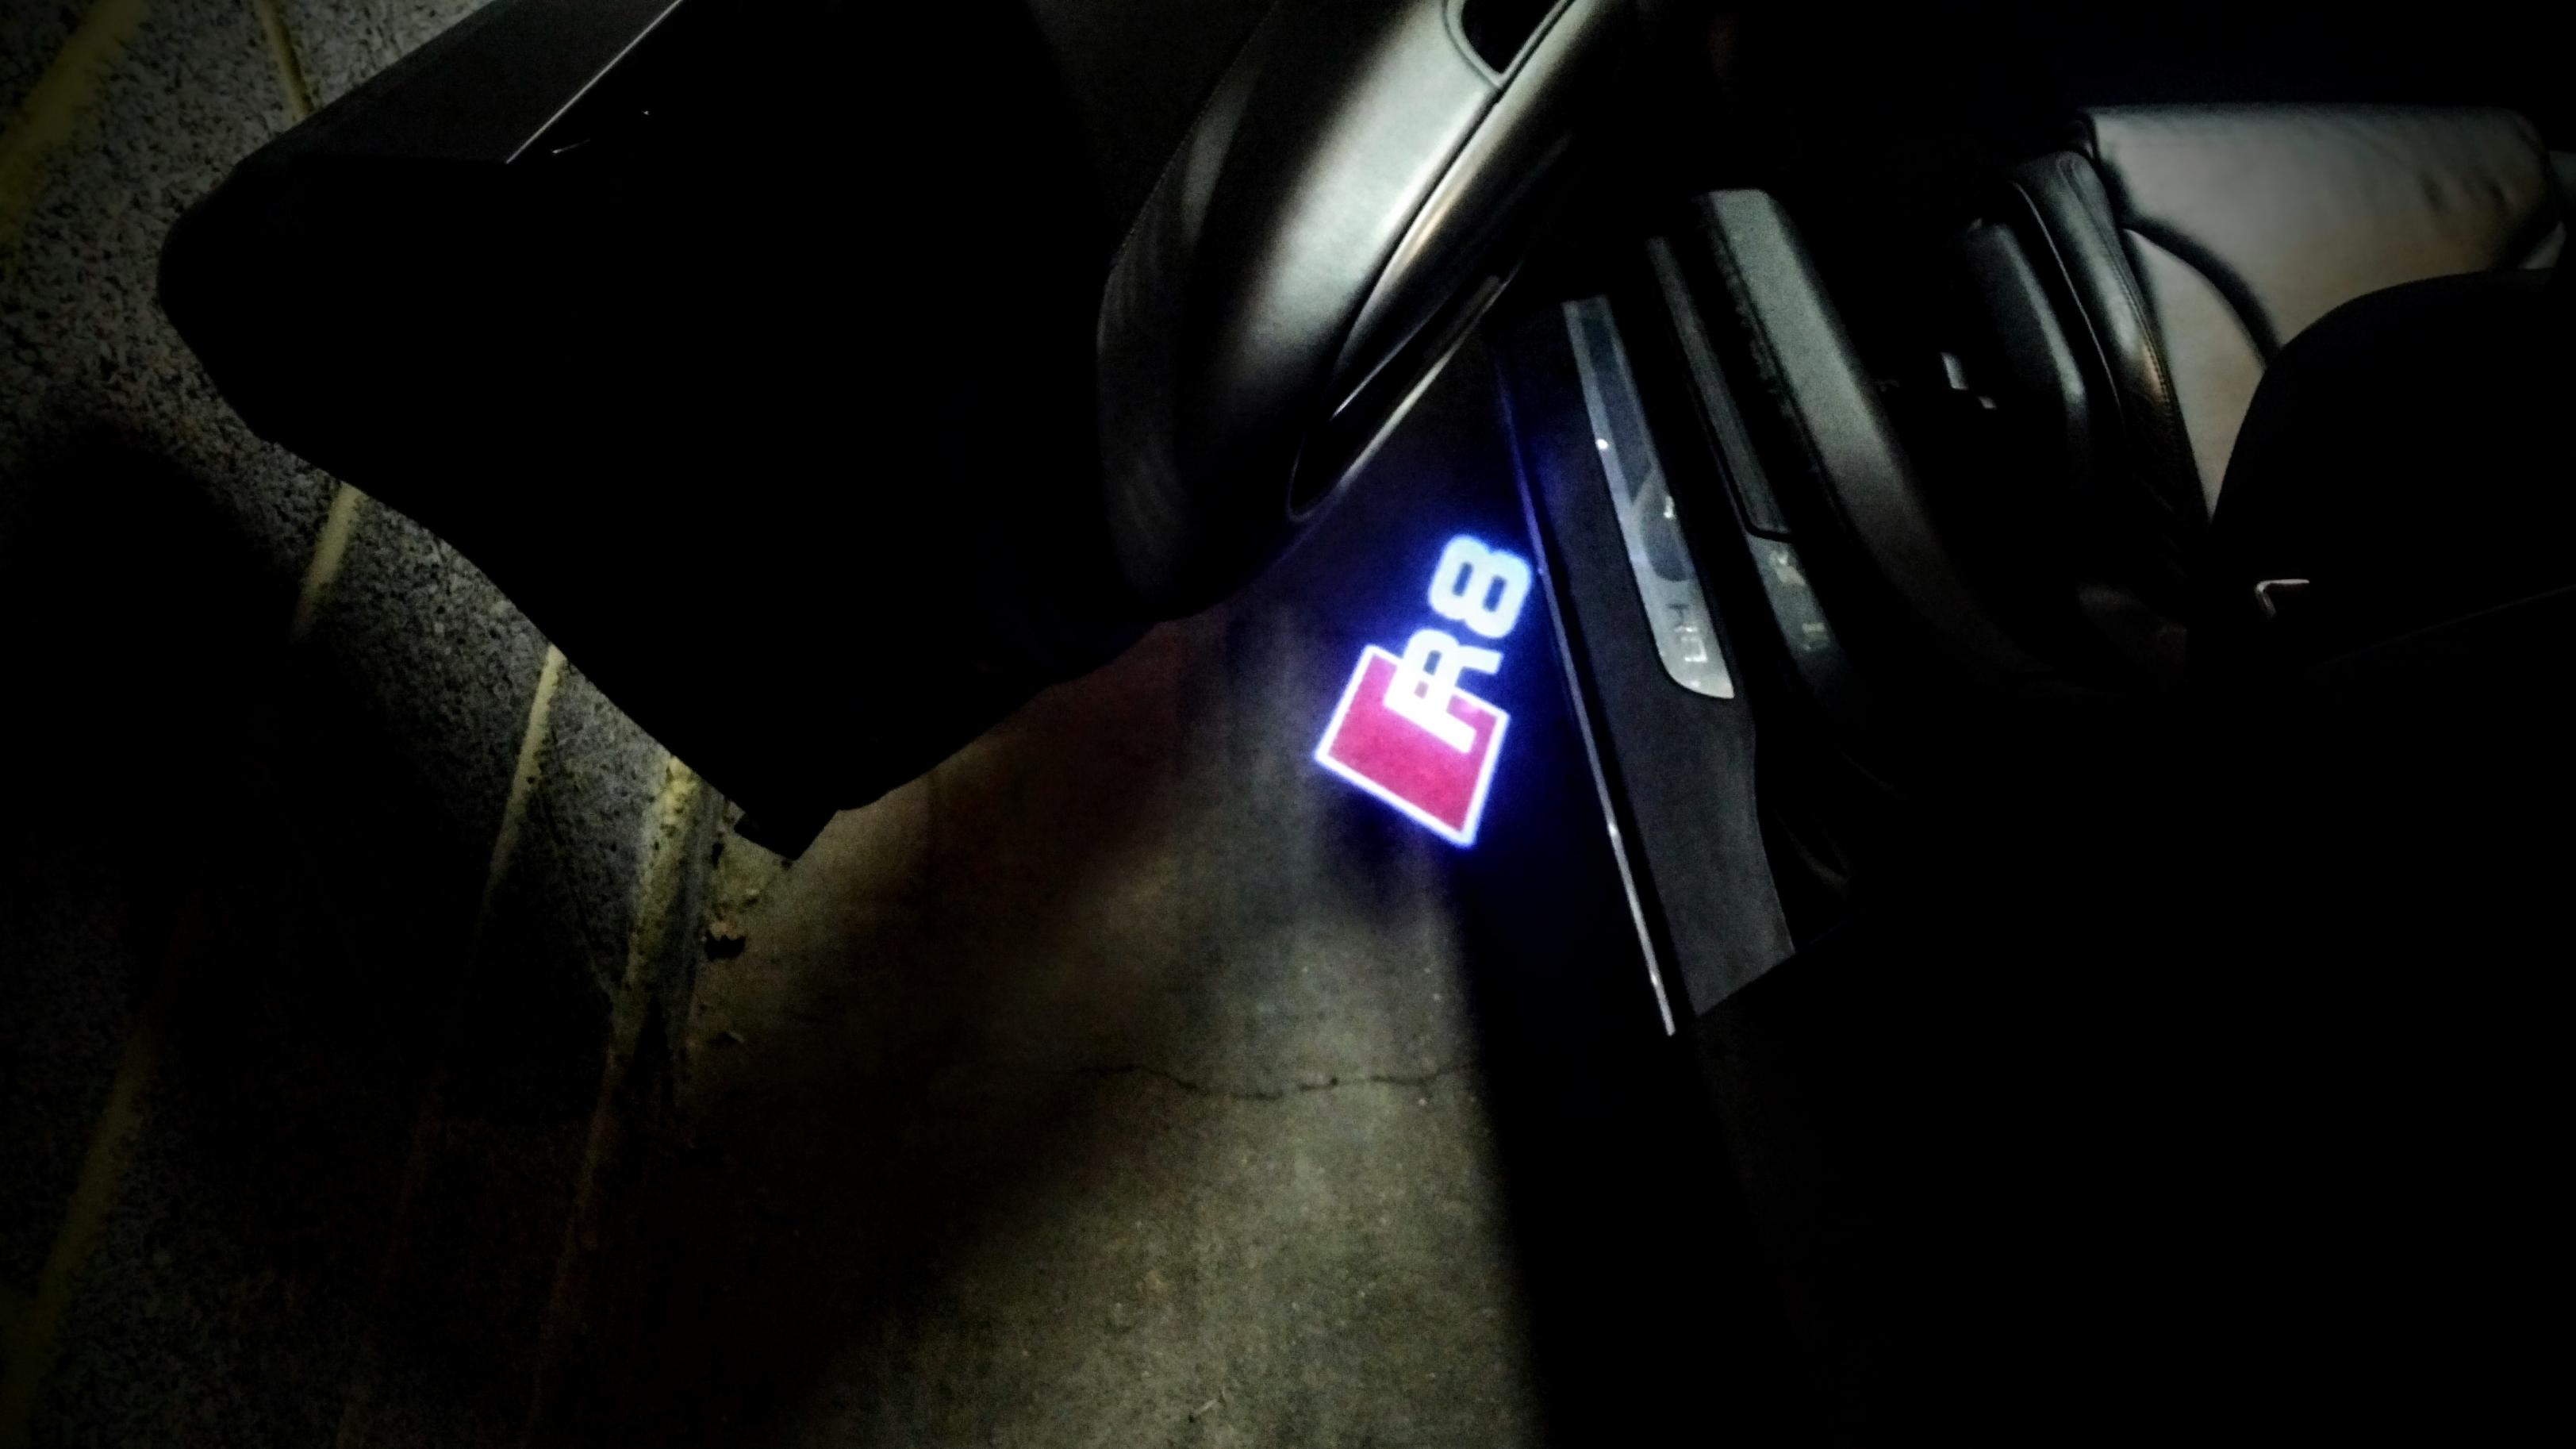 Puddle lights Rings or Quattro?-puddle-light-r8.jpg